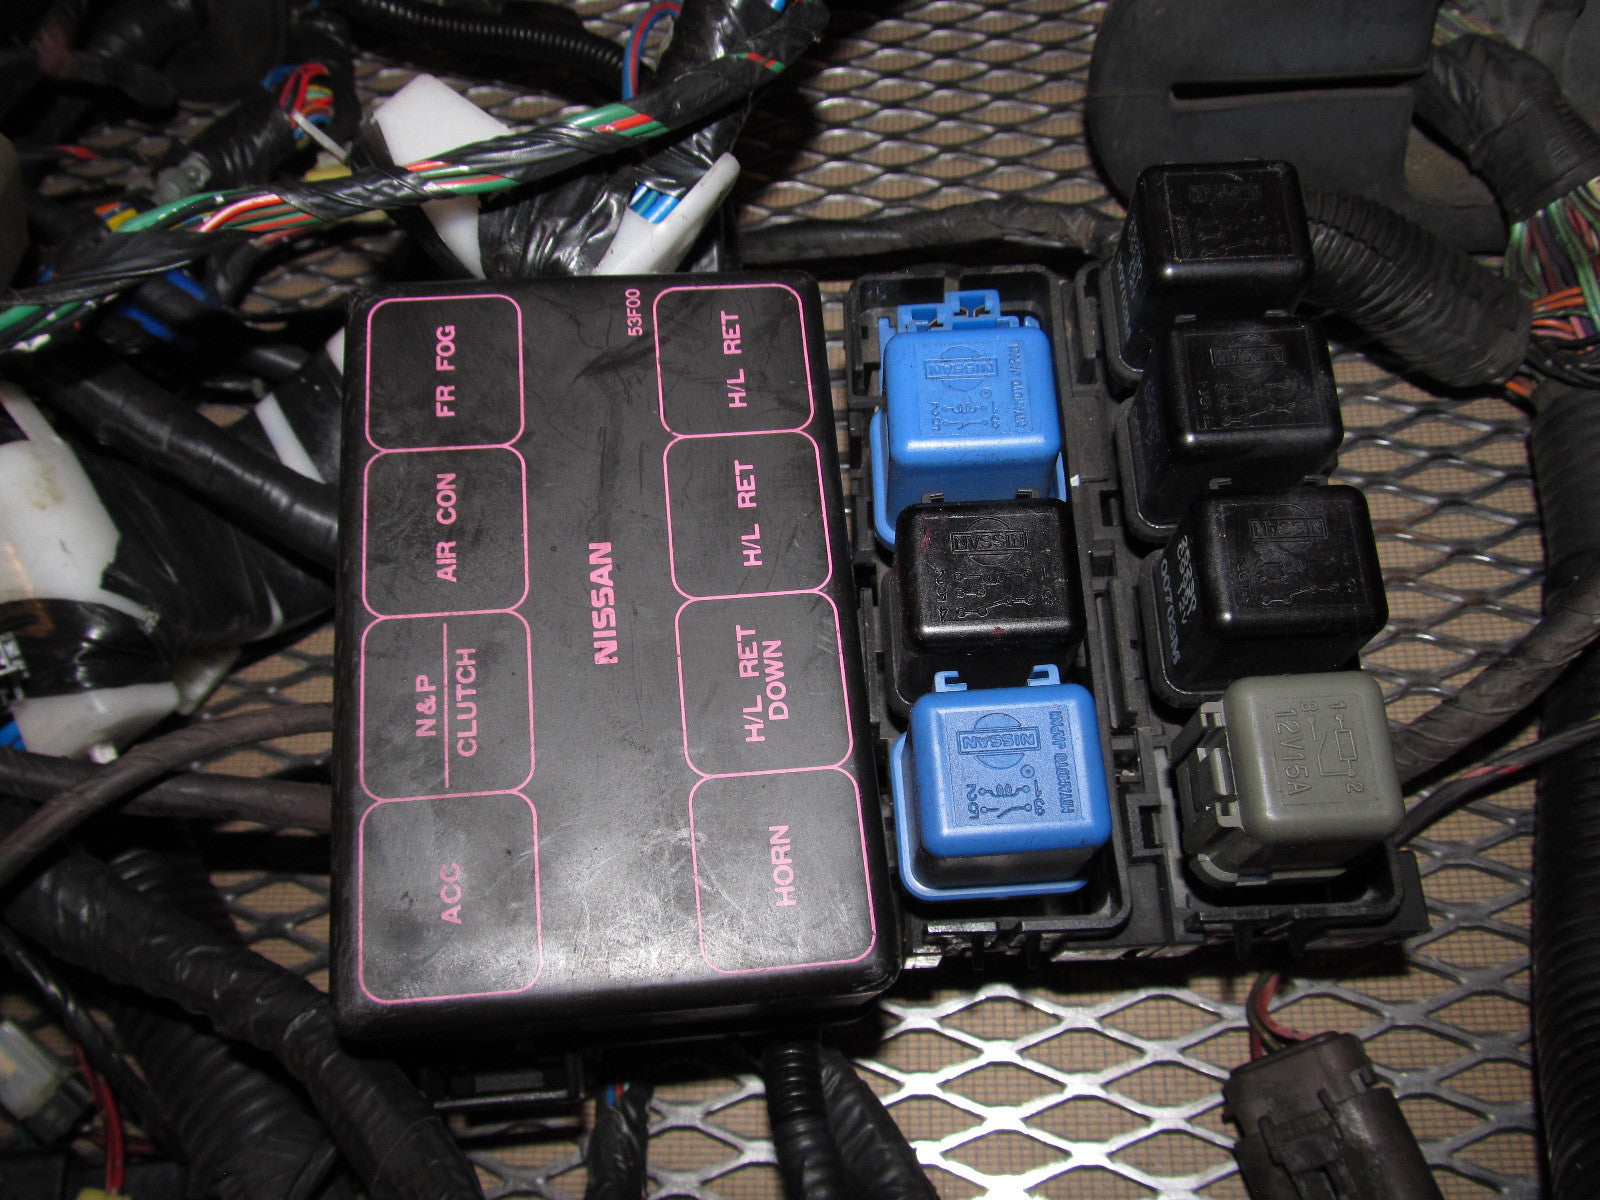 Nissan Pathfinder Unique Pickup Wiring Diagram Of Diagrams further Maxresdefault furthermore Img B Da A D F Ec De in addition S Highs besides Help. on 1991 nissan 240sx wiring diagram